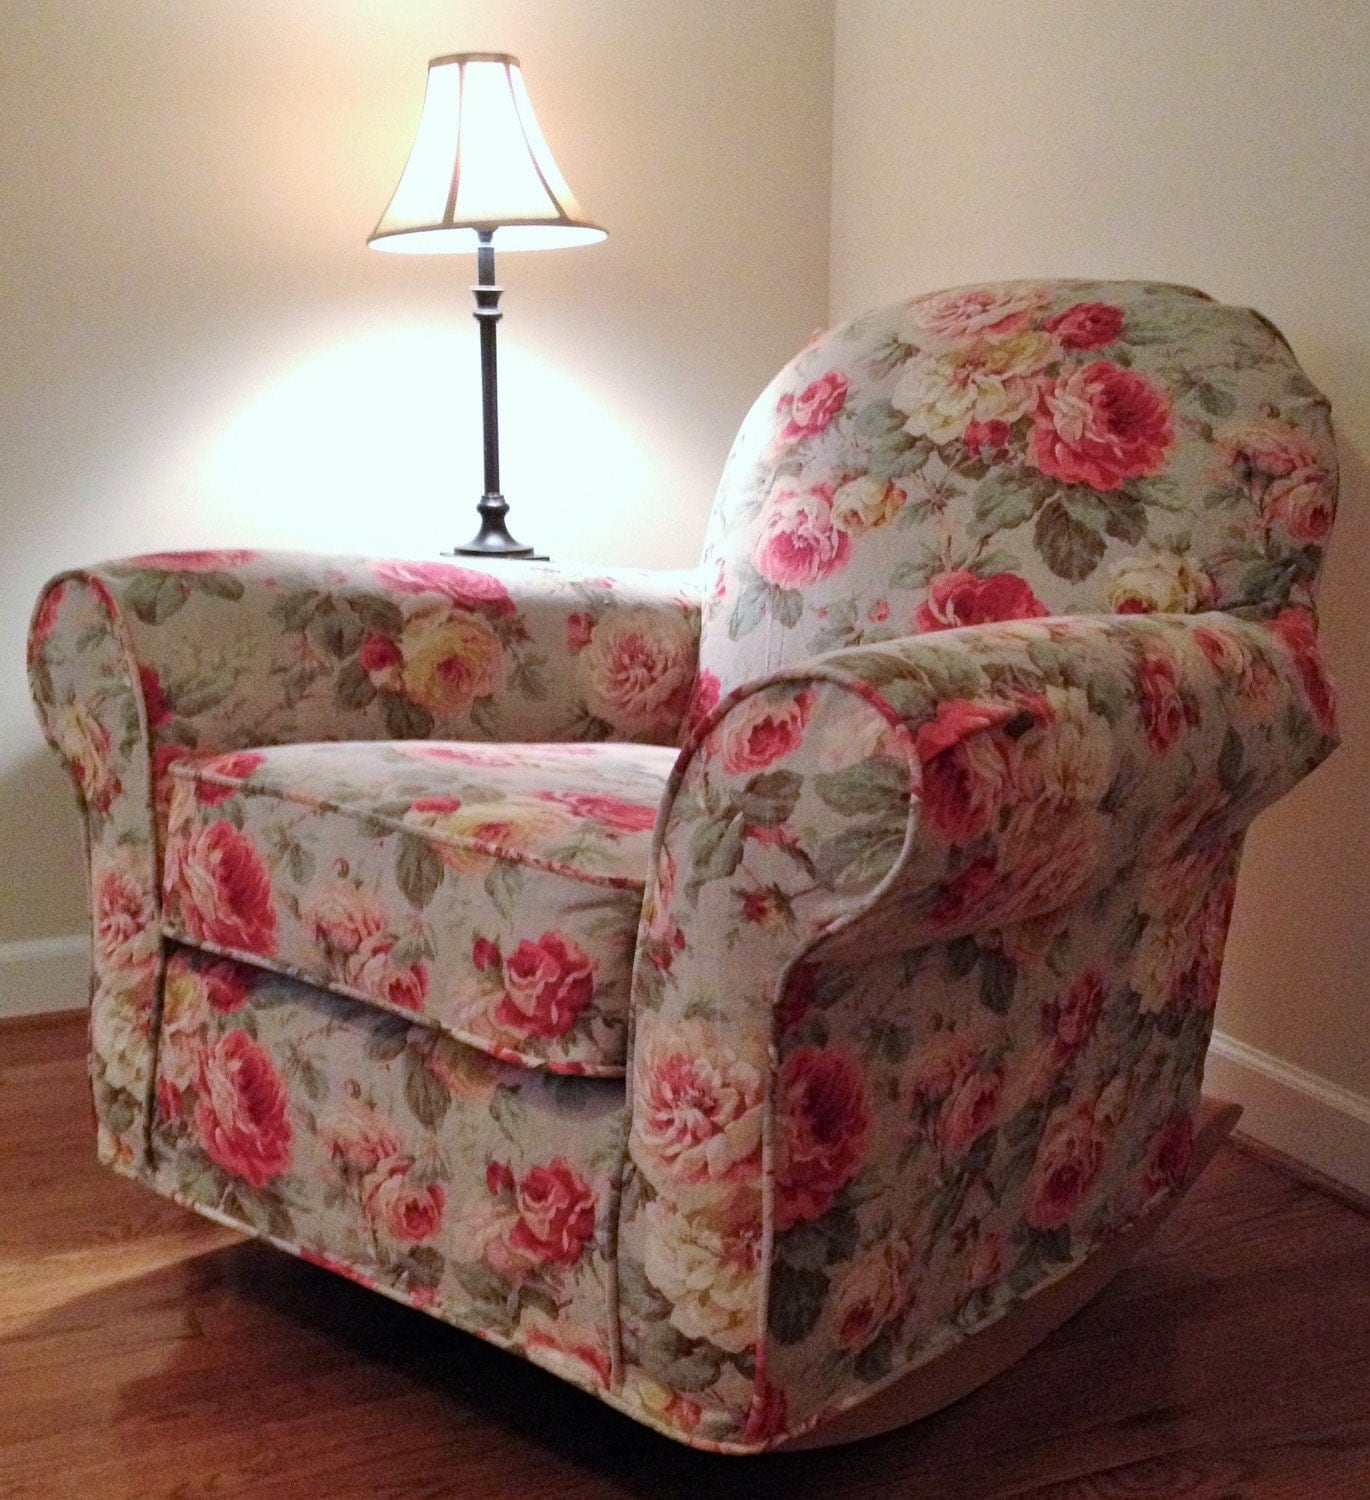 Pottery Barn Slipcovers: Custom Slipcover For Pottery Barn Dream Swivel Glider Made